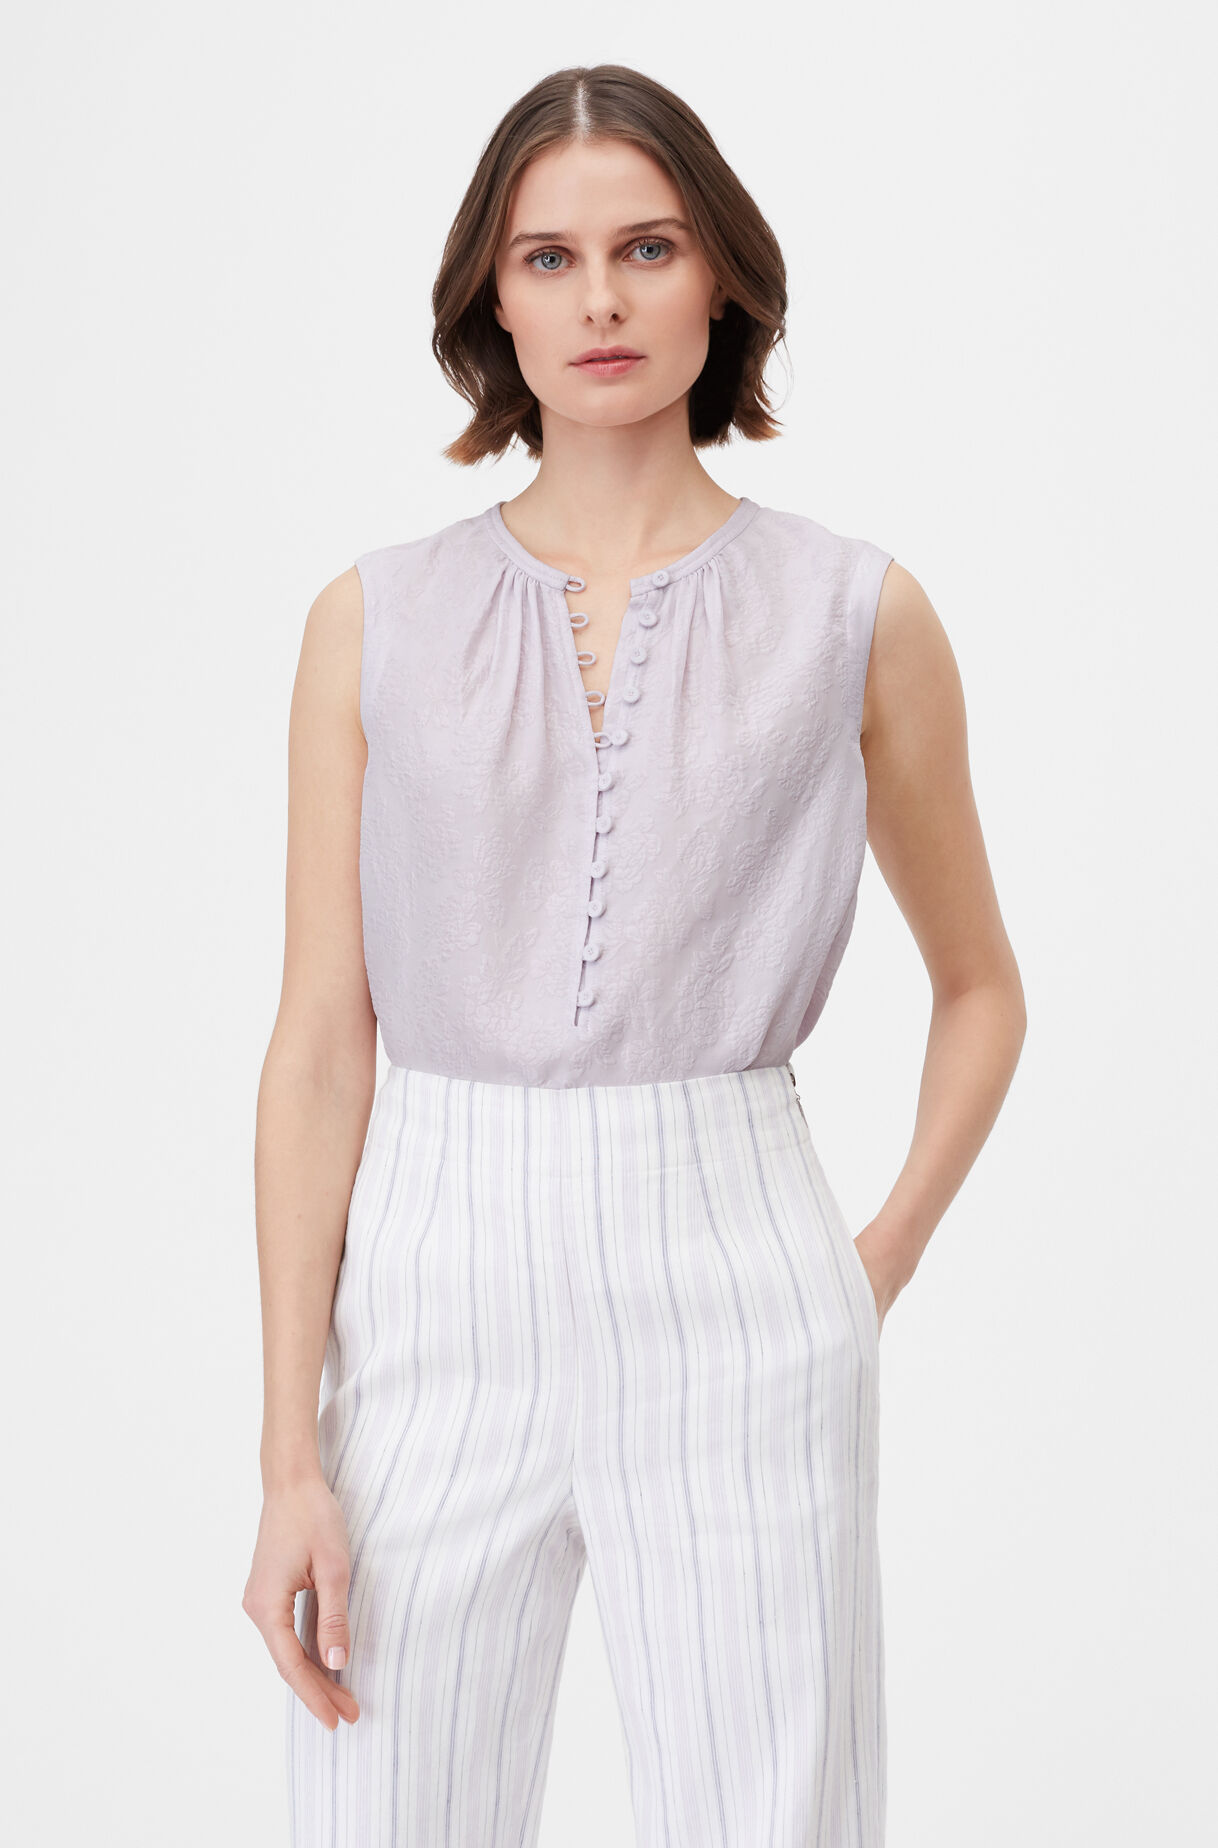 319229T383-Faded Lavender